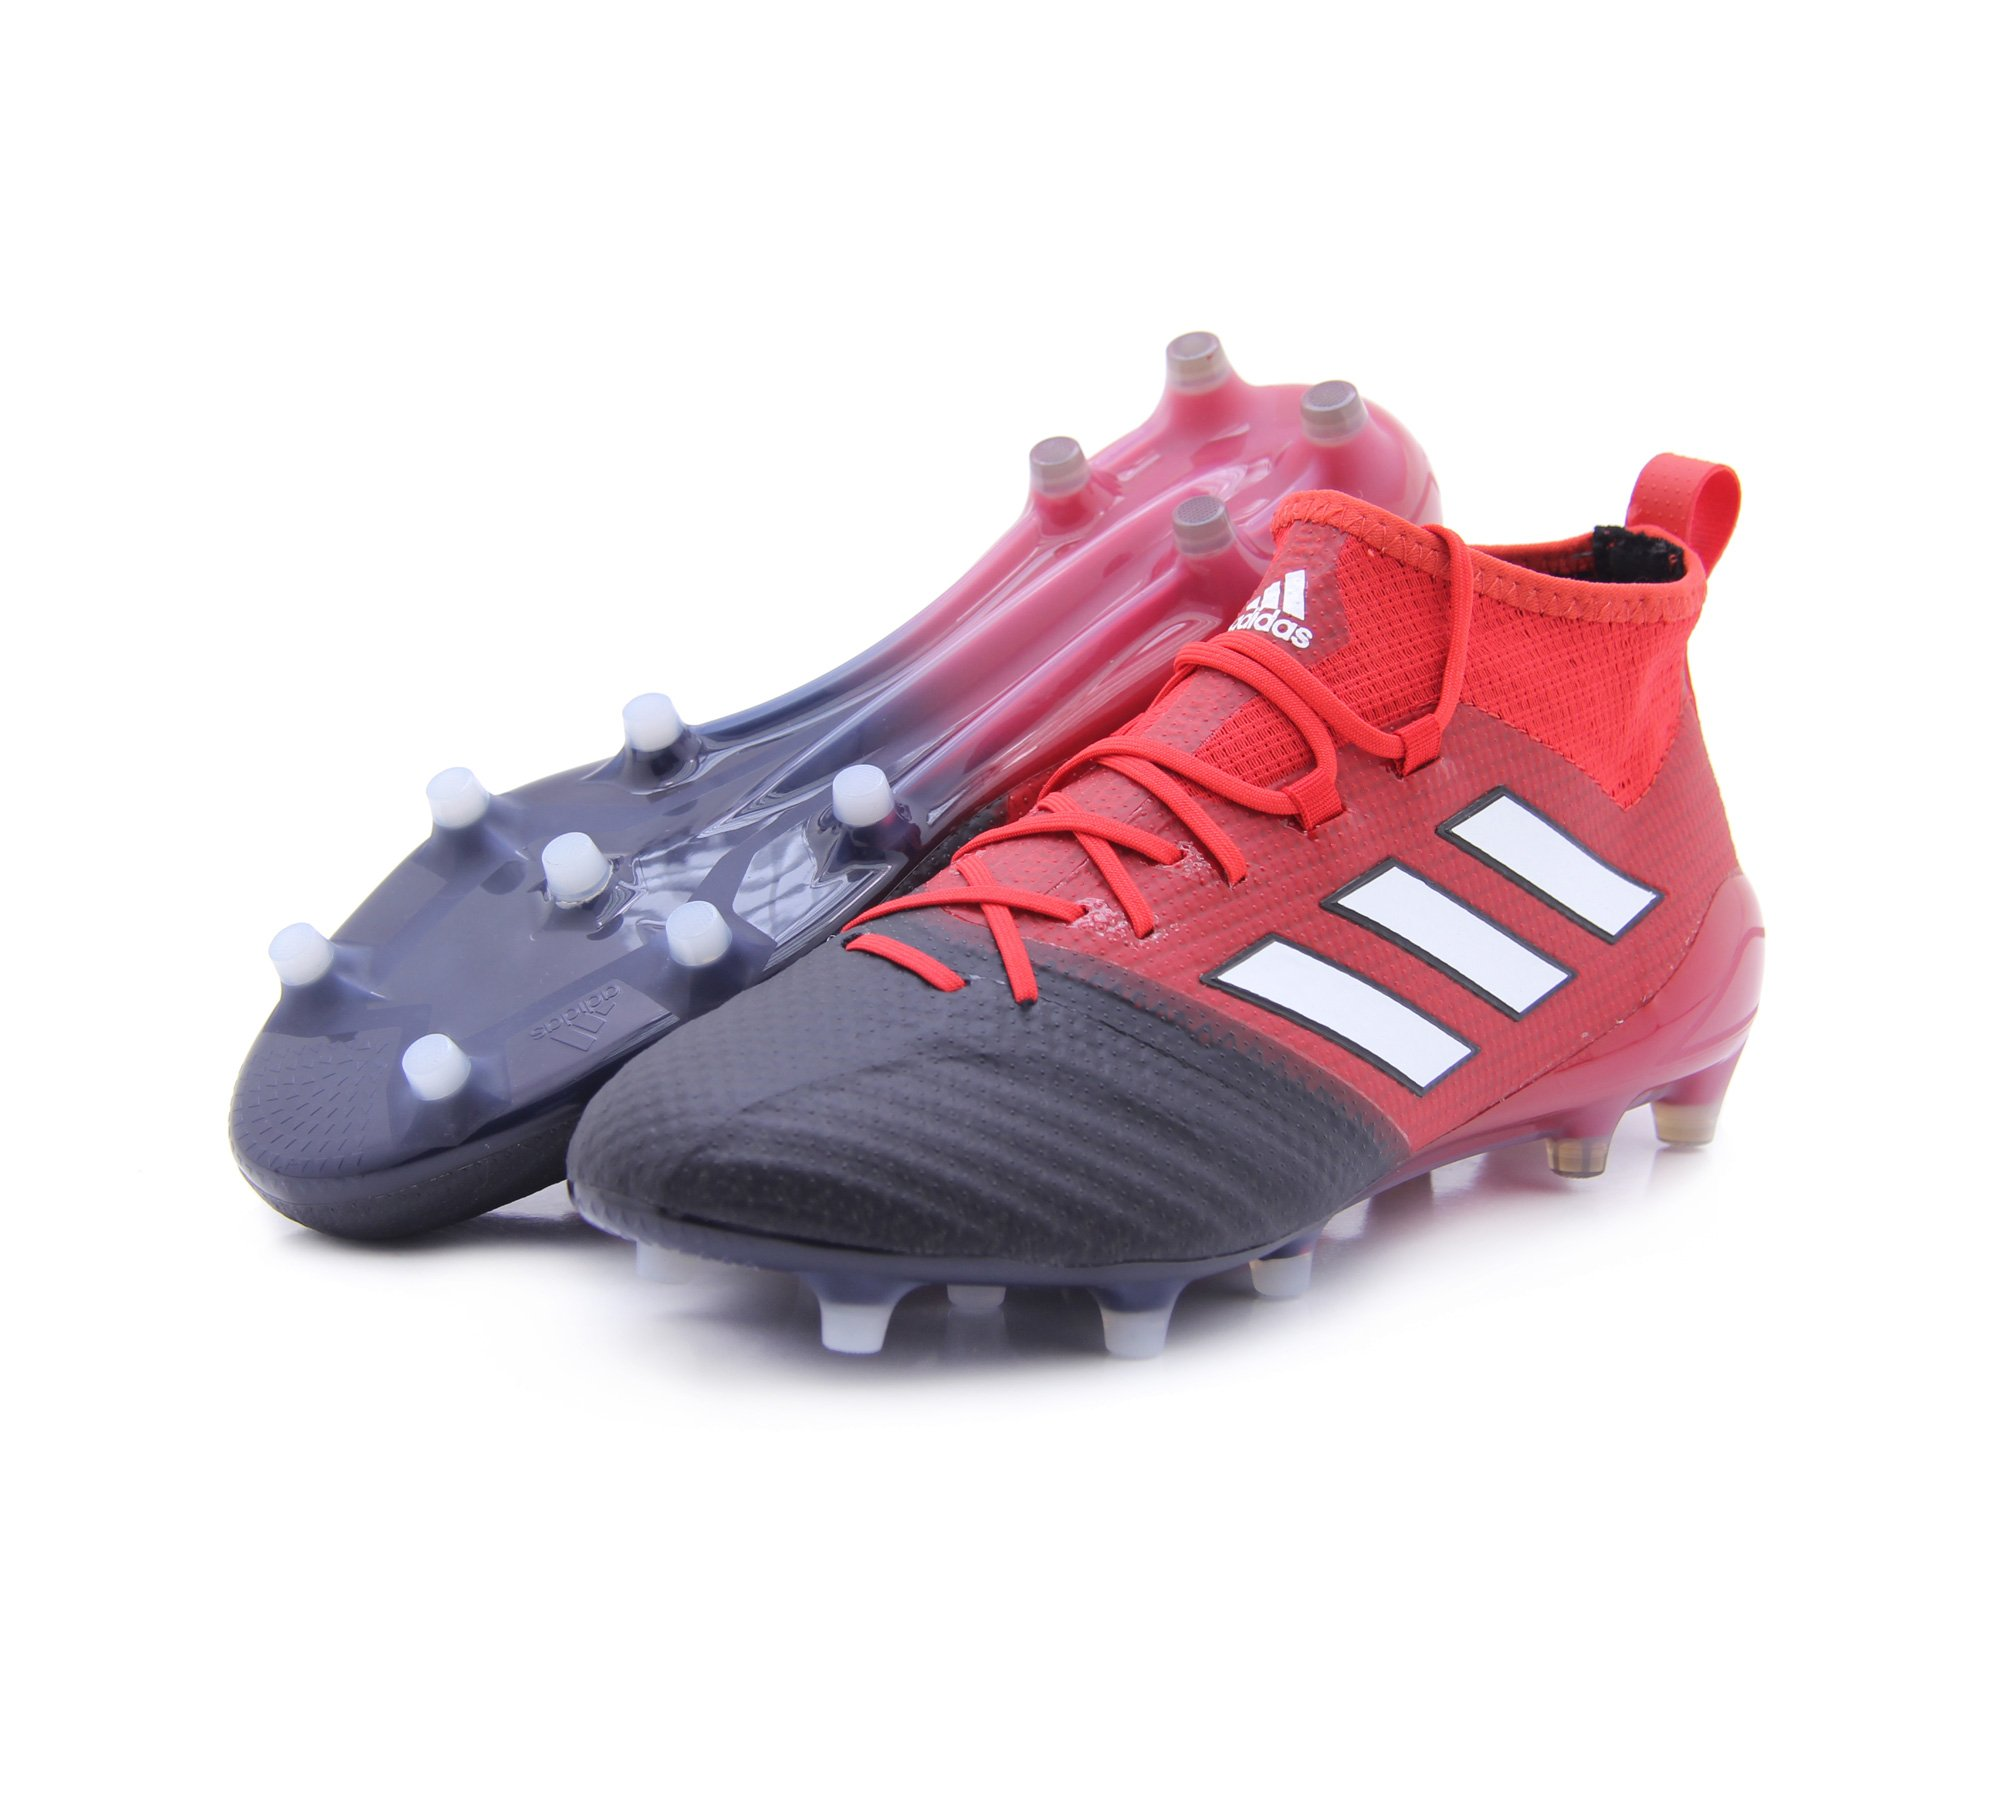 new style 2abe6 c05b4 adidas Men's ACE 16.1 Primeknit FG Soccer Cleats (Red/White/Core Black),  9.0 D(M) US